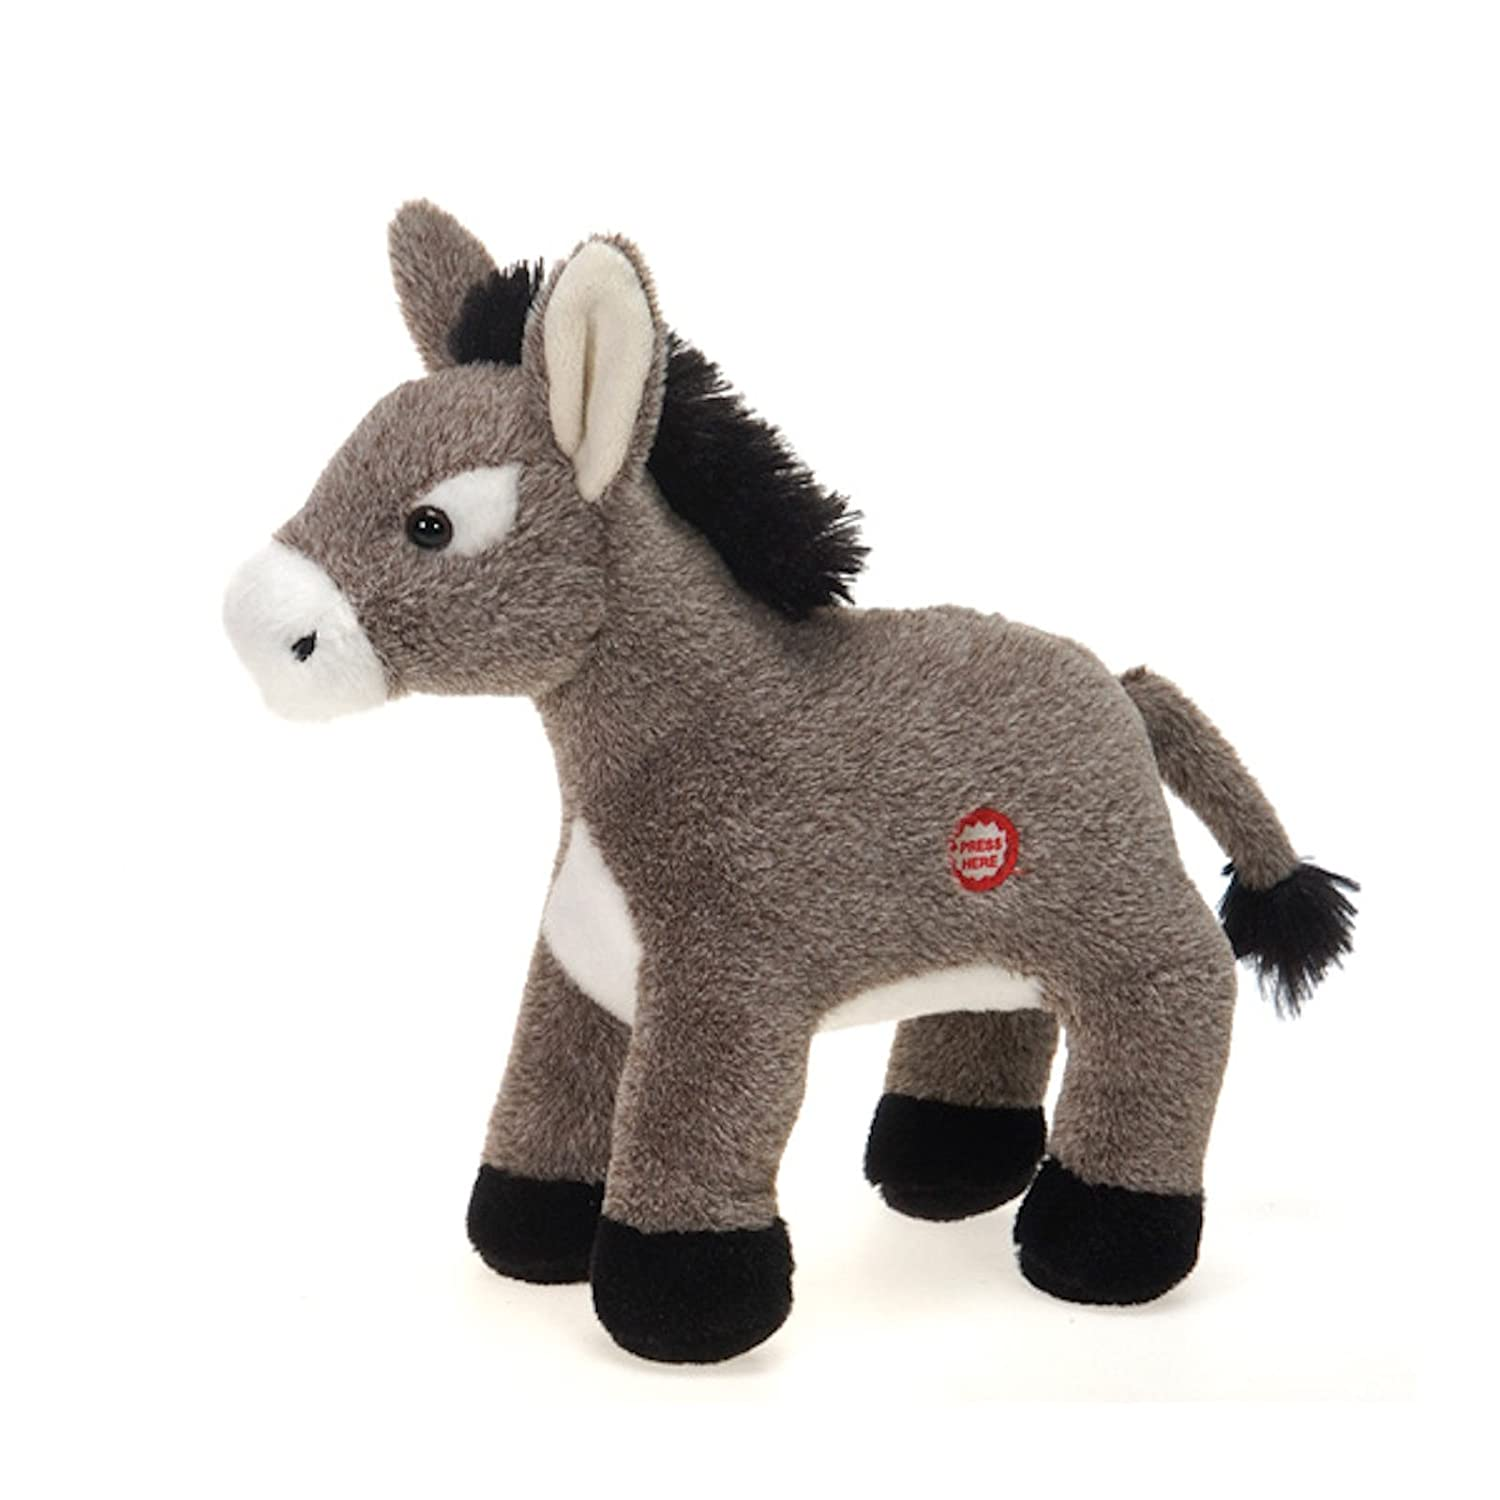 amazoncom dominic the donkey with sound plush stuffed animal toy by fiesta toys 95 toys games - Dominique The Christmas Donkey